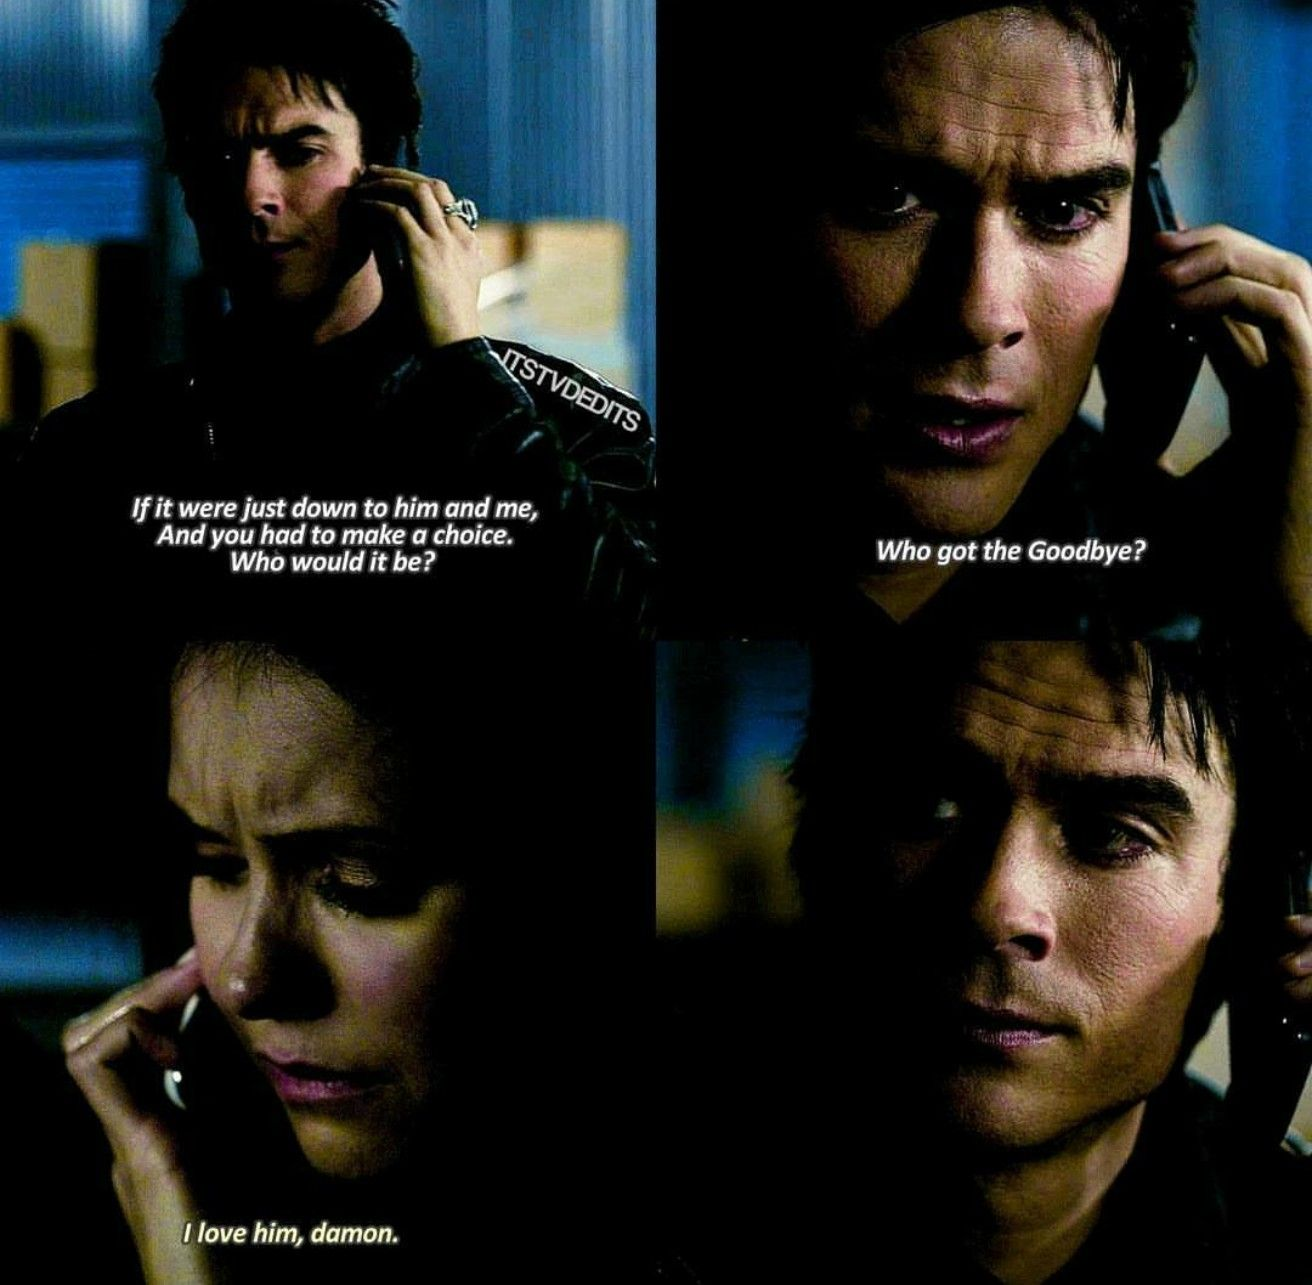 Poor Damon, he's thinks he's about to die and he's still ...